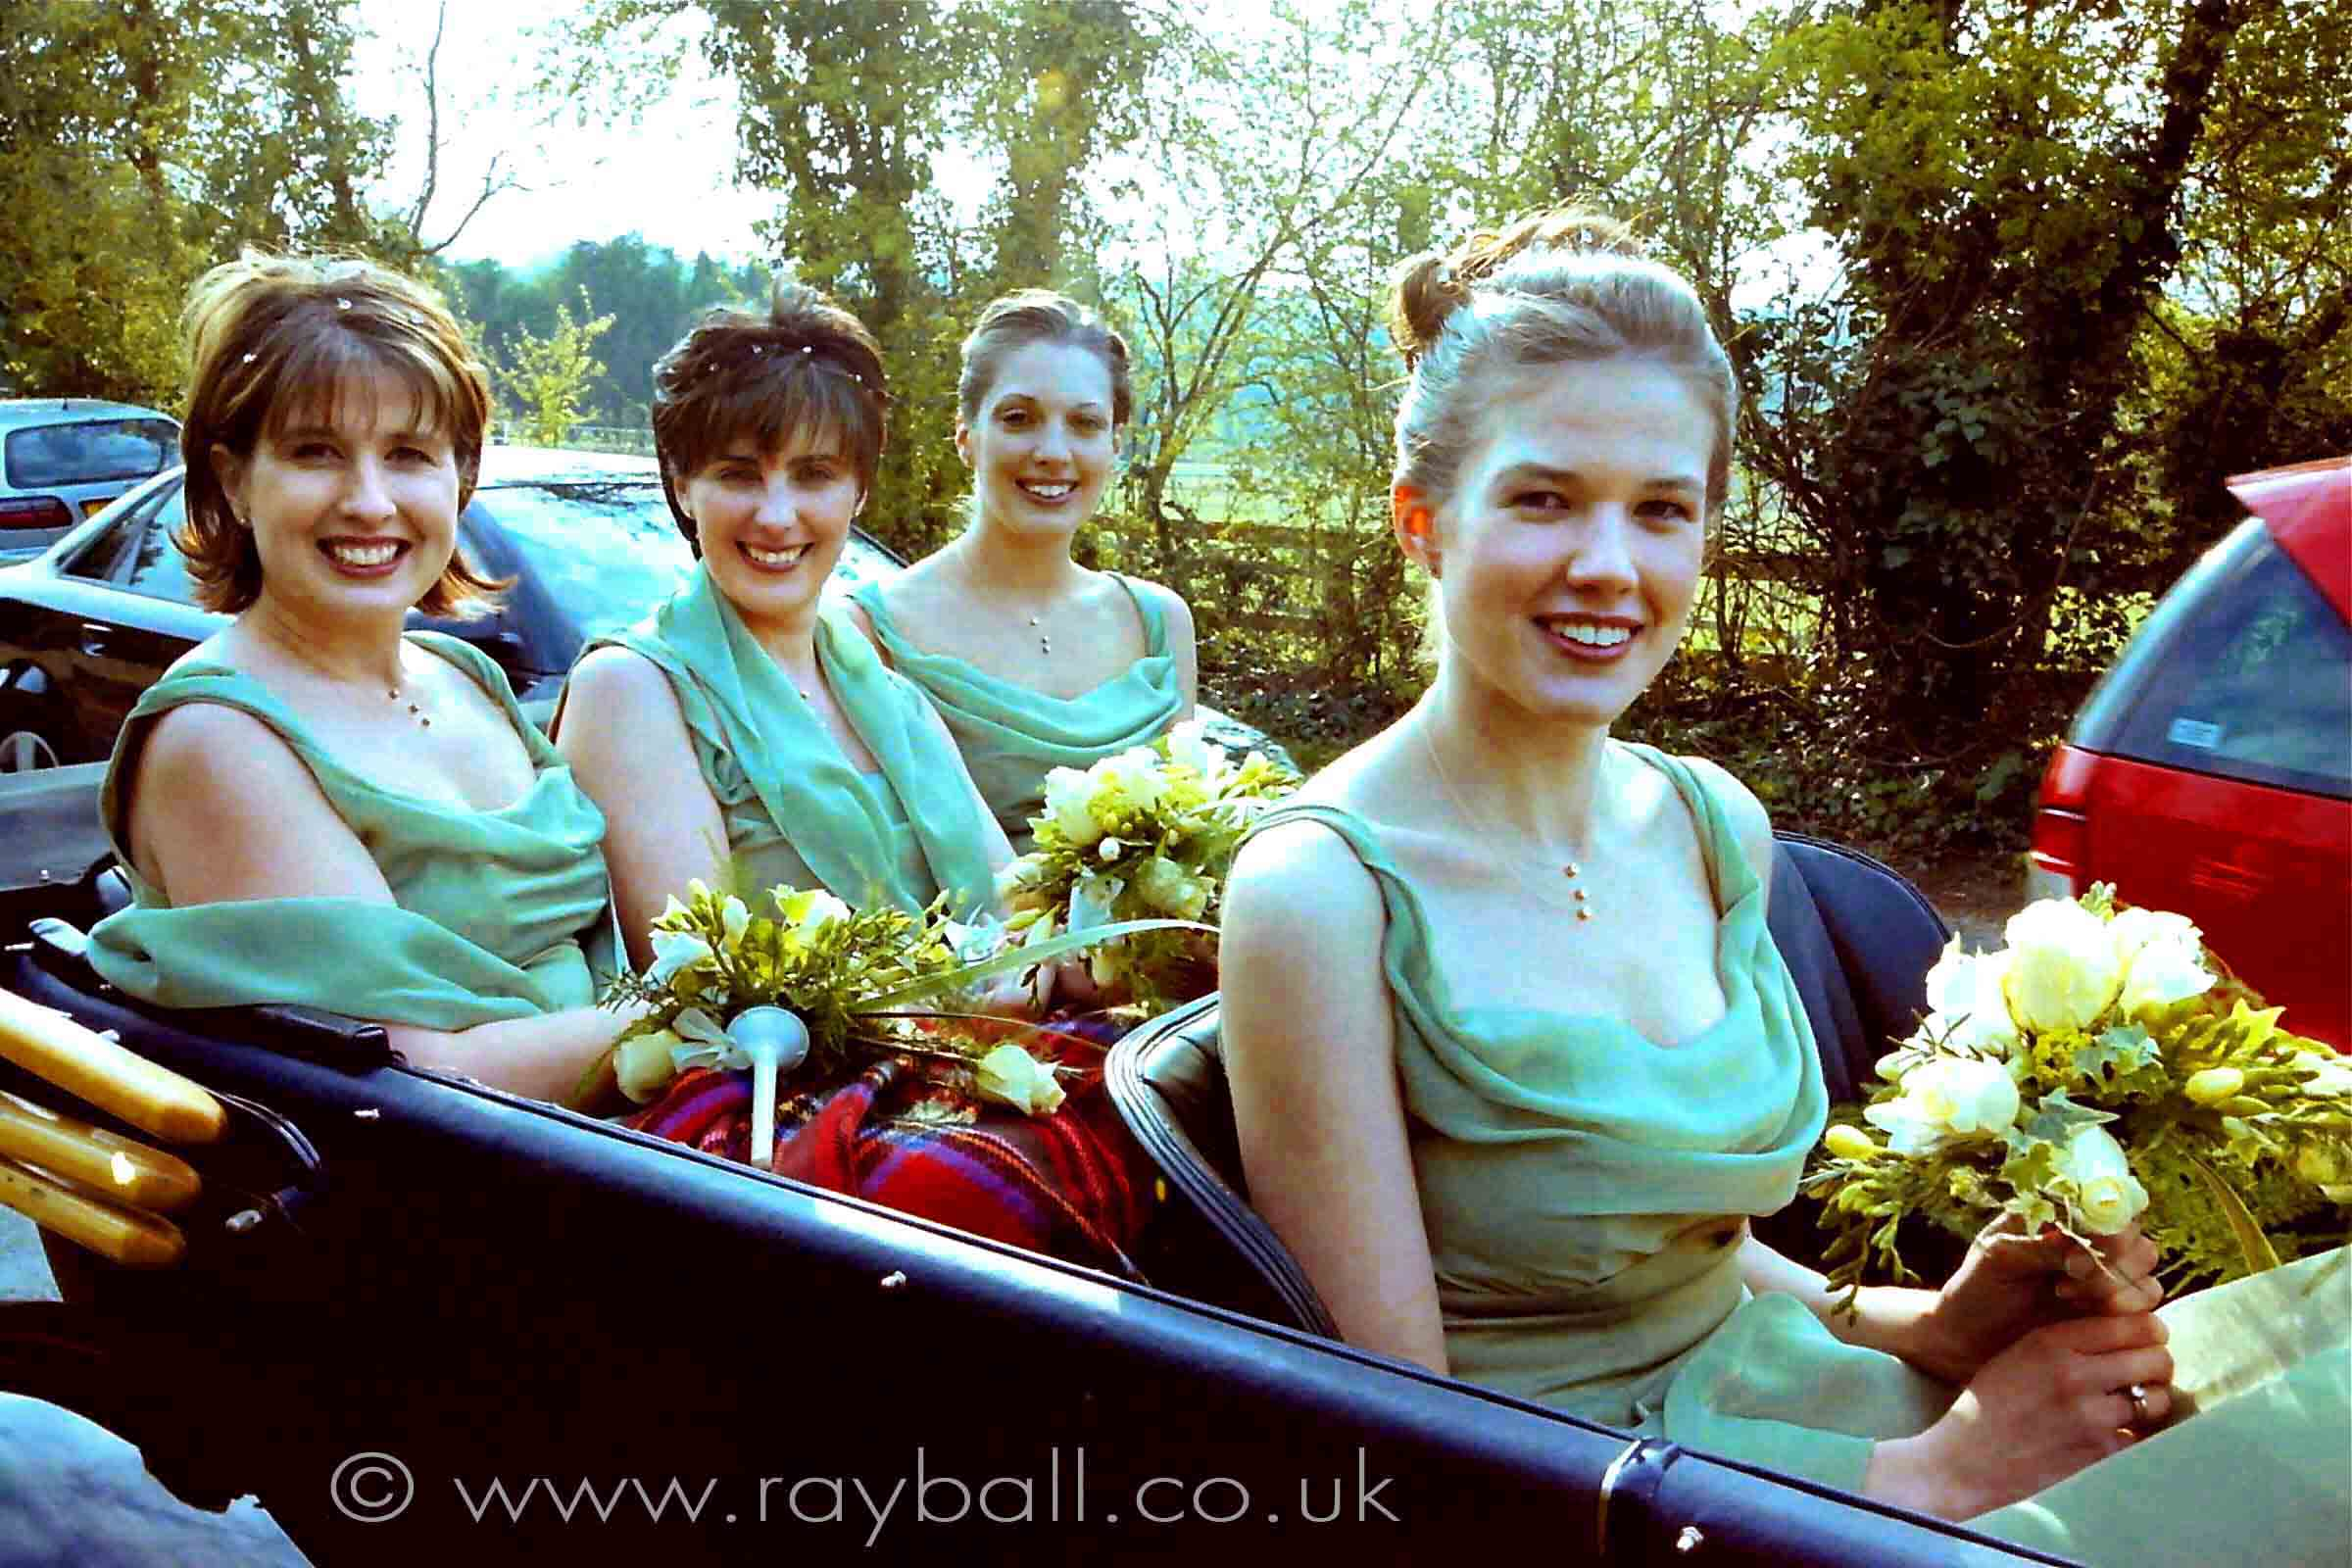 My picture of four beautiful bridesmaids in car in Long Ditton, Surrey.